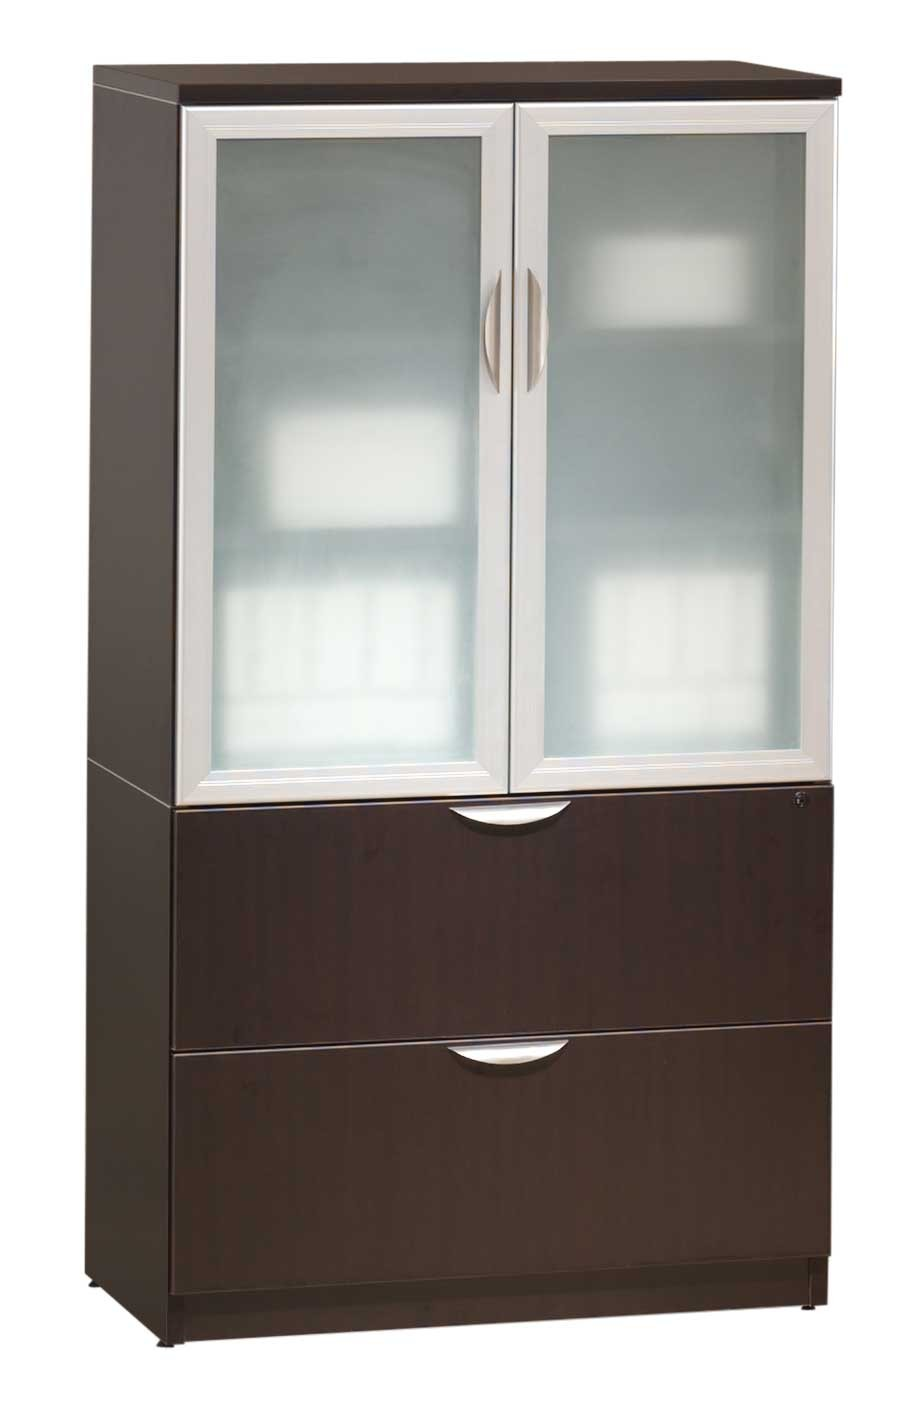 storage cabinets with glass doors storage cabinet with glass doors homesfeed 26855